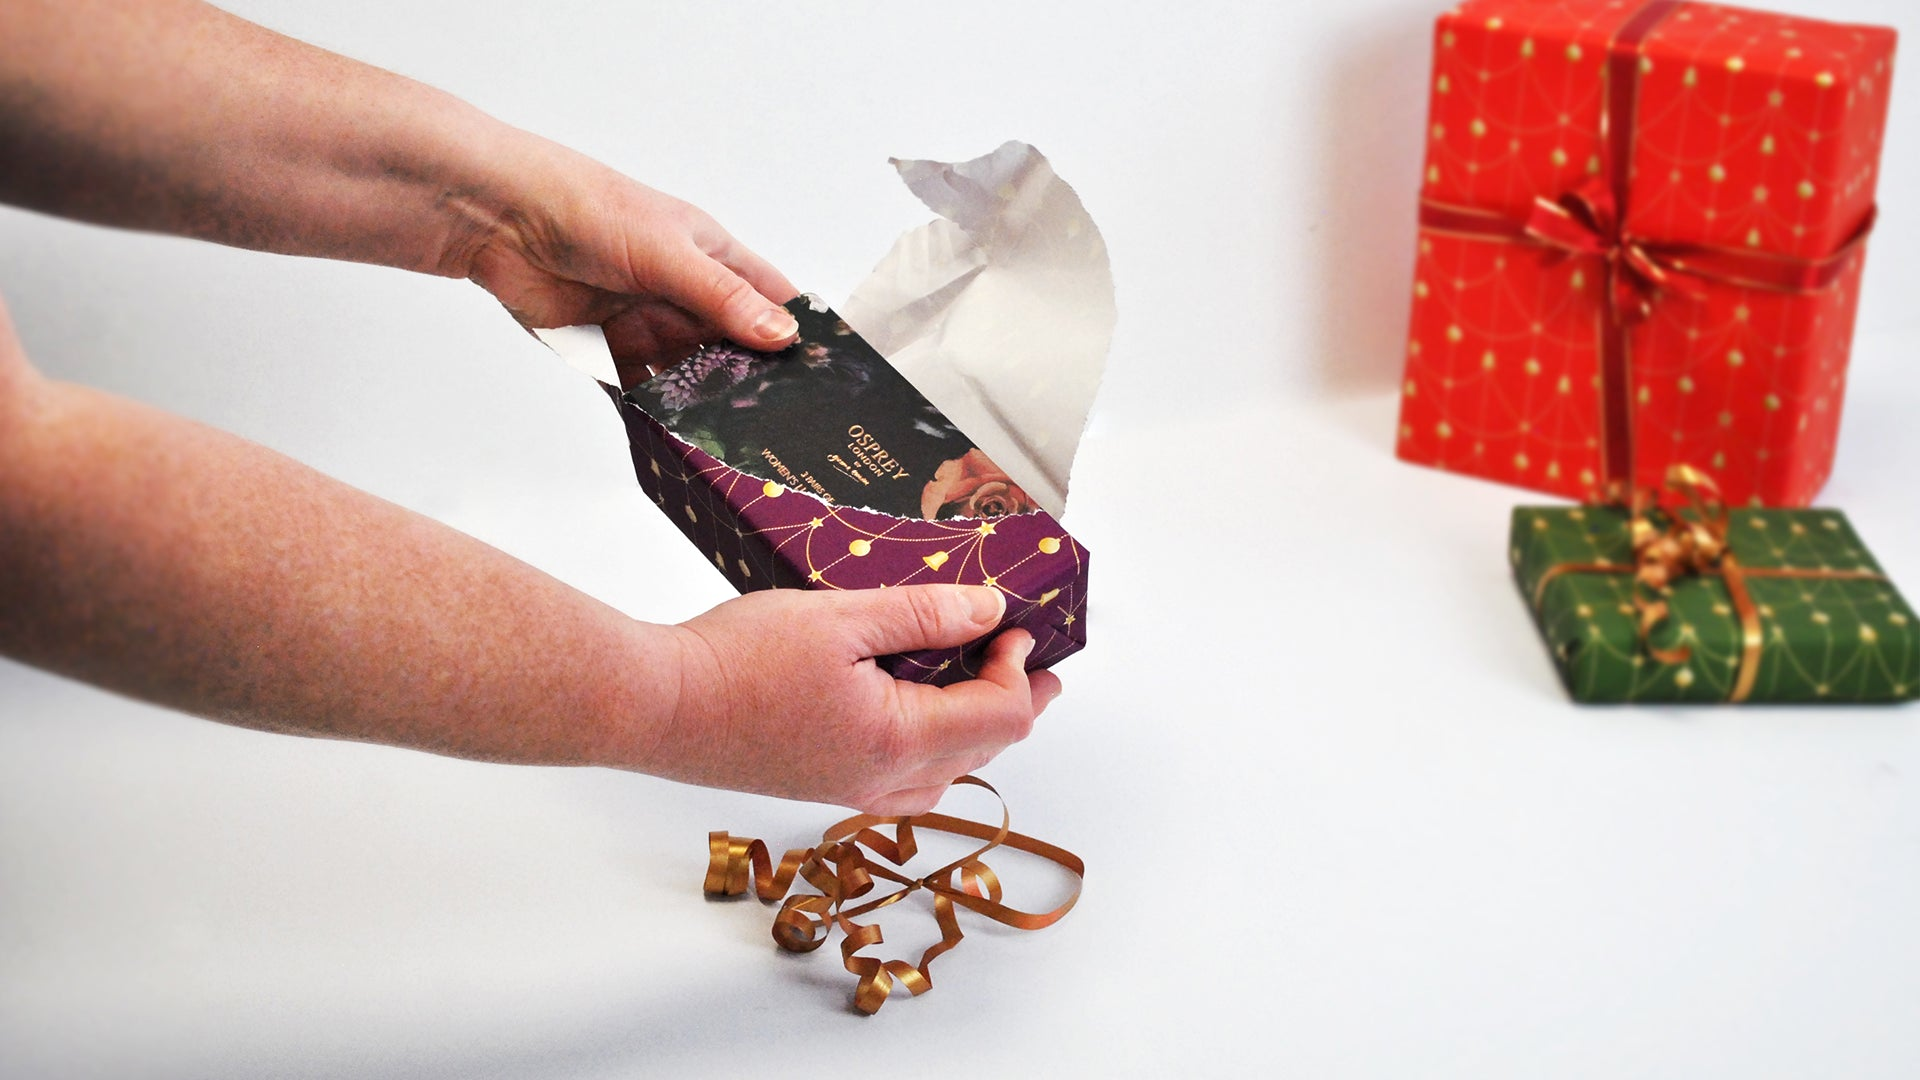 Wholesaler Of Luxury Giftwrap For Retailers